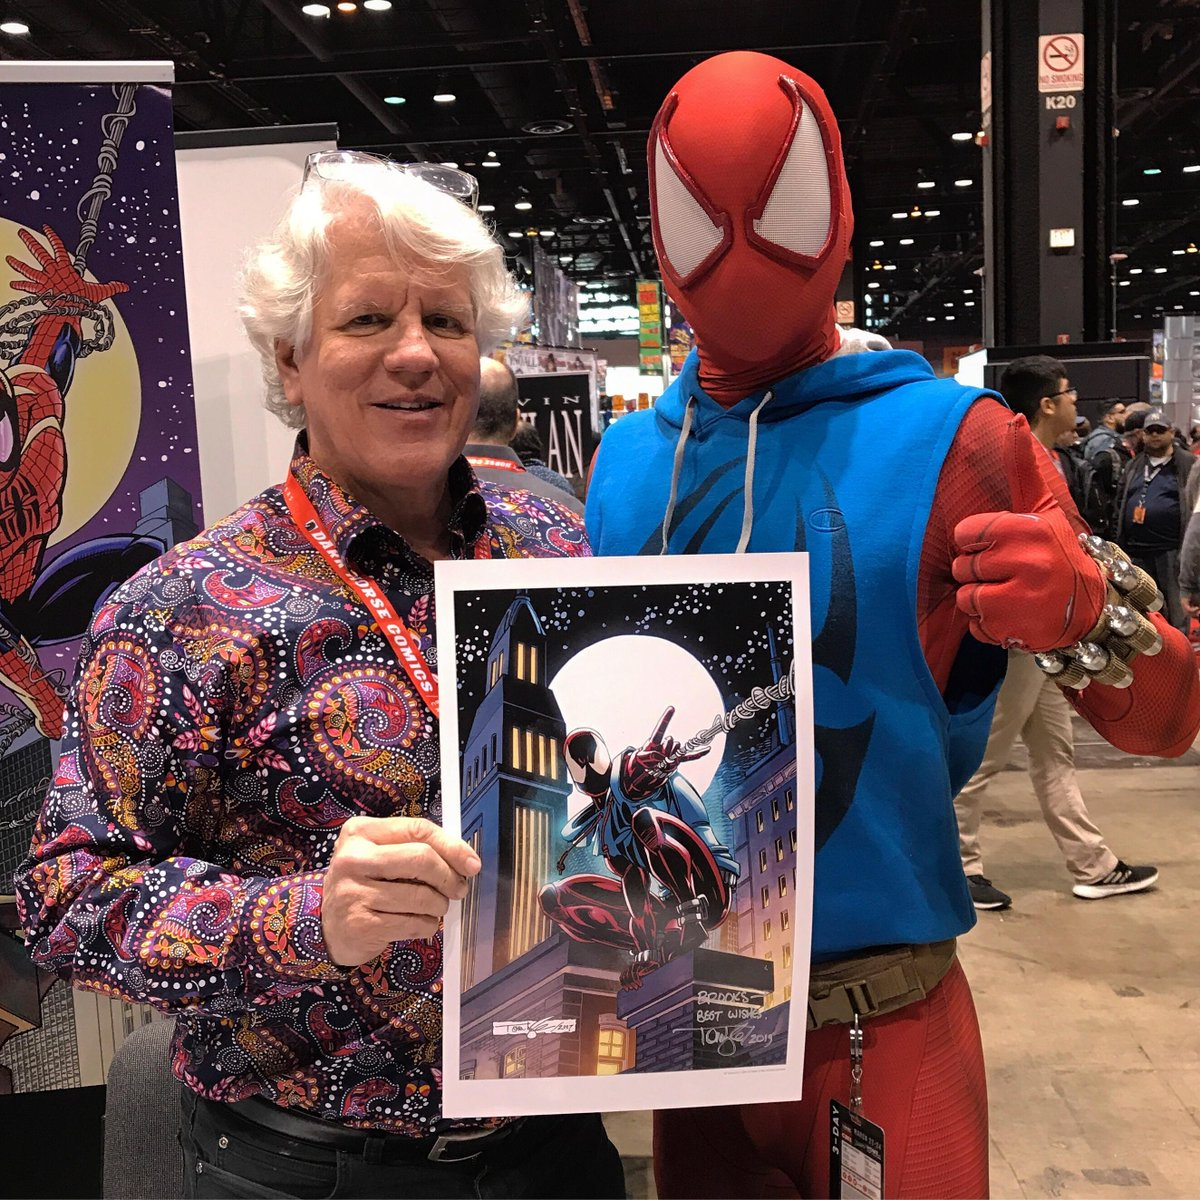 Saddened to hear of the passing of Tom Lyle the designer of the original Scarlet Spider costume and a fine man. He was kind to our show and an amazing artist. <br>http://pic.twitter.com/Mdu3OGUgGs